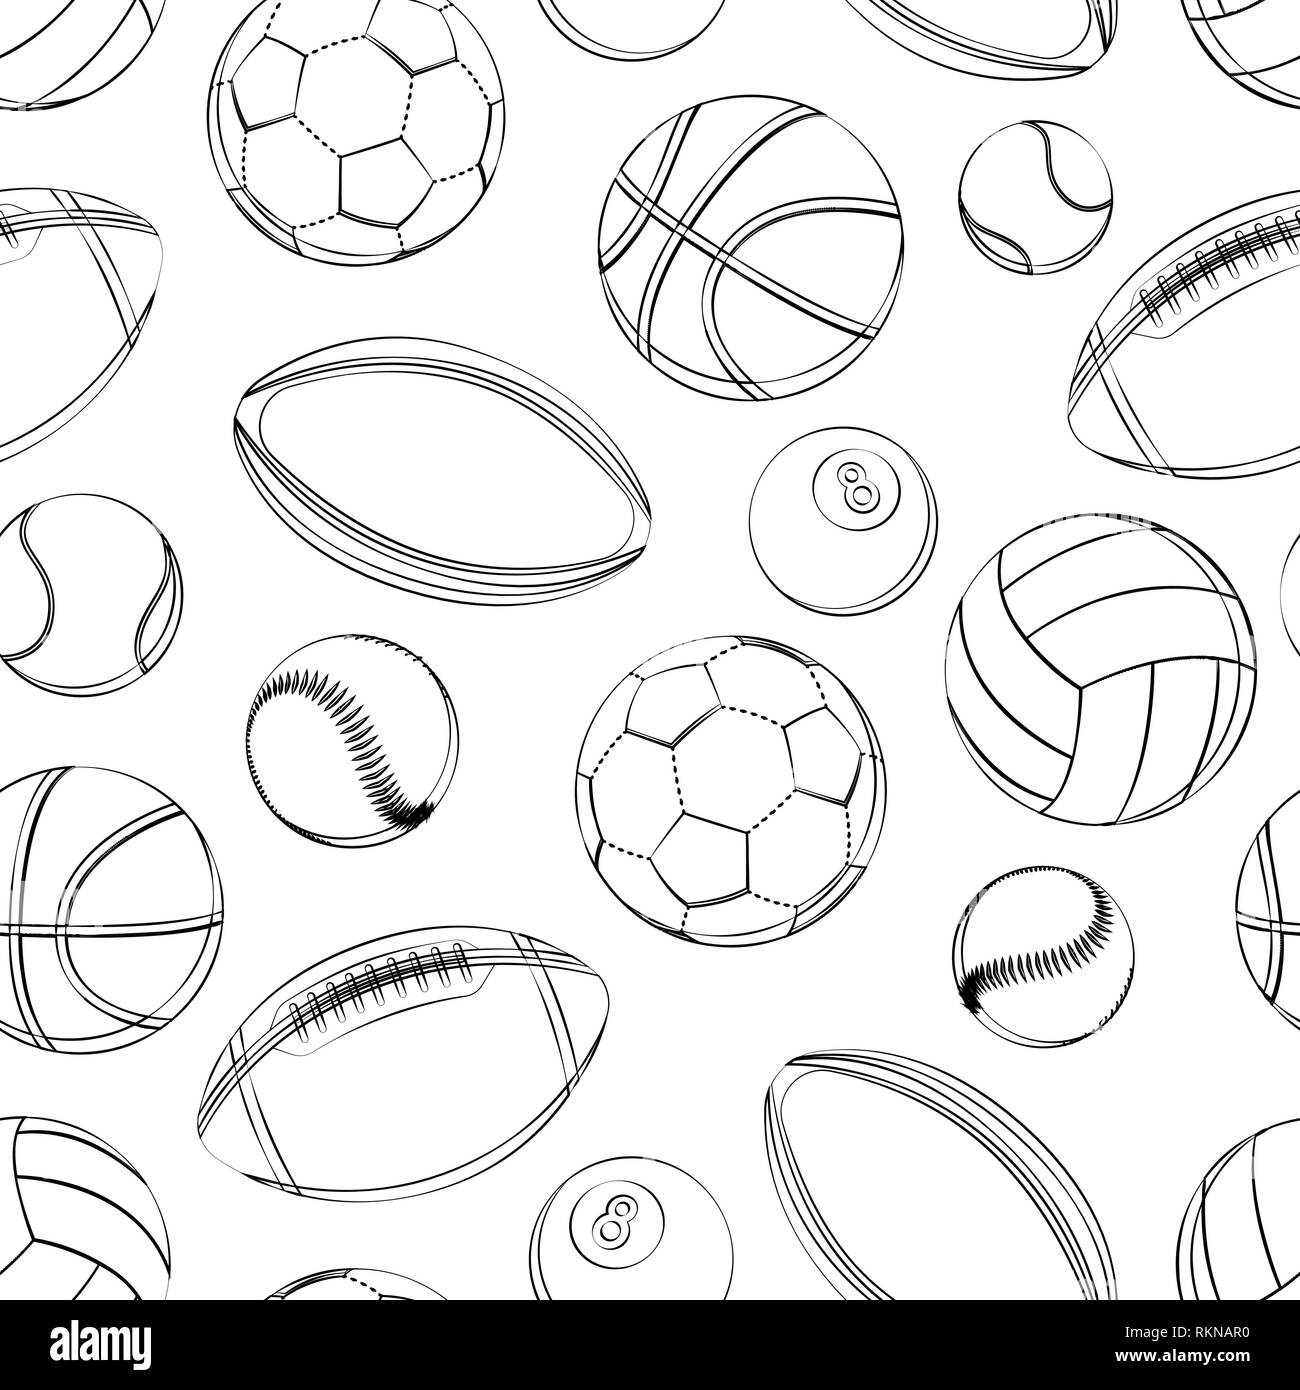 Sports balls seamless pattern soccer football tennis baseball basketball rugby american football volleyball outline black and white